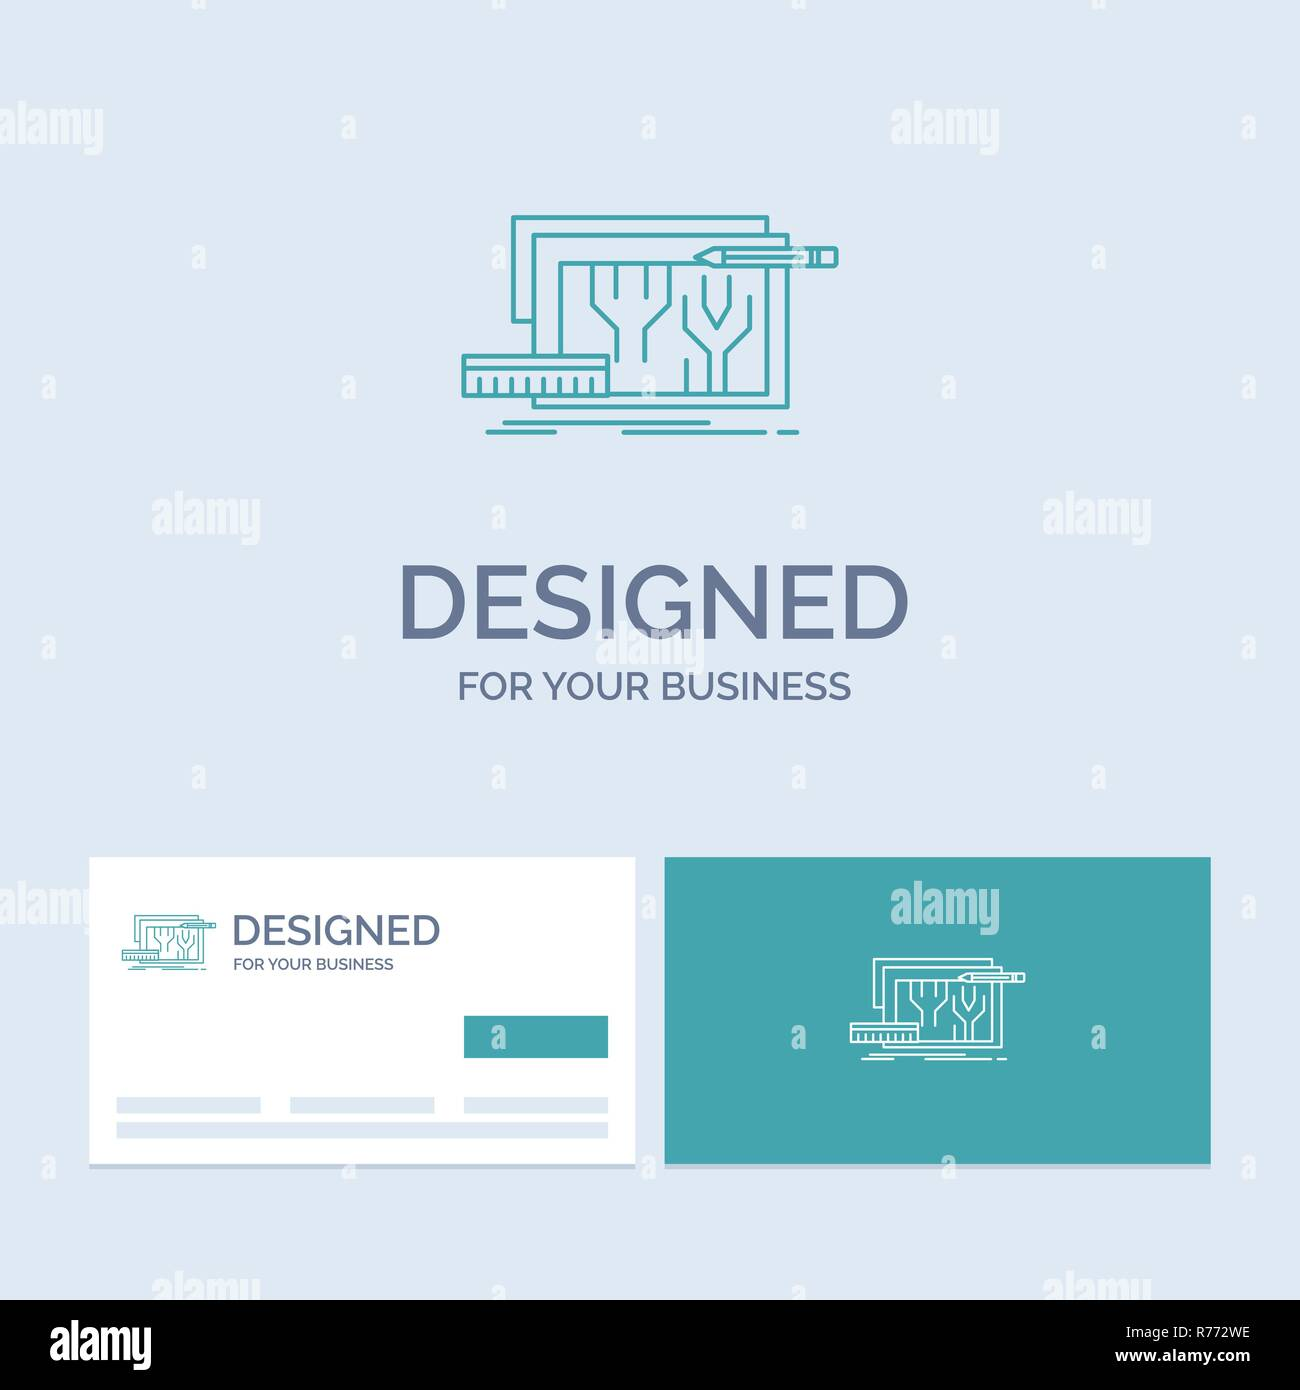 Architecture, blueprint, circuit, design, engineering Business Logo Line Icon Symbol for your business. Turquoise Business Cards with Brand logo templ - Stock Image